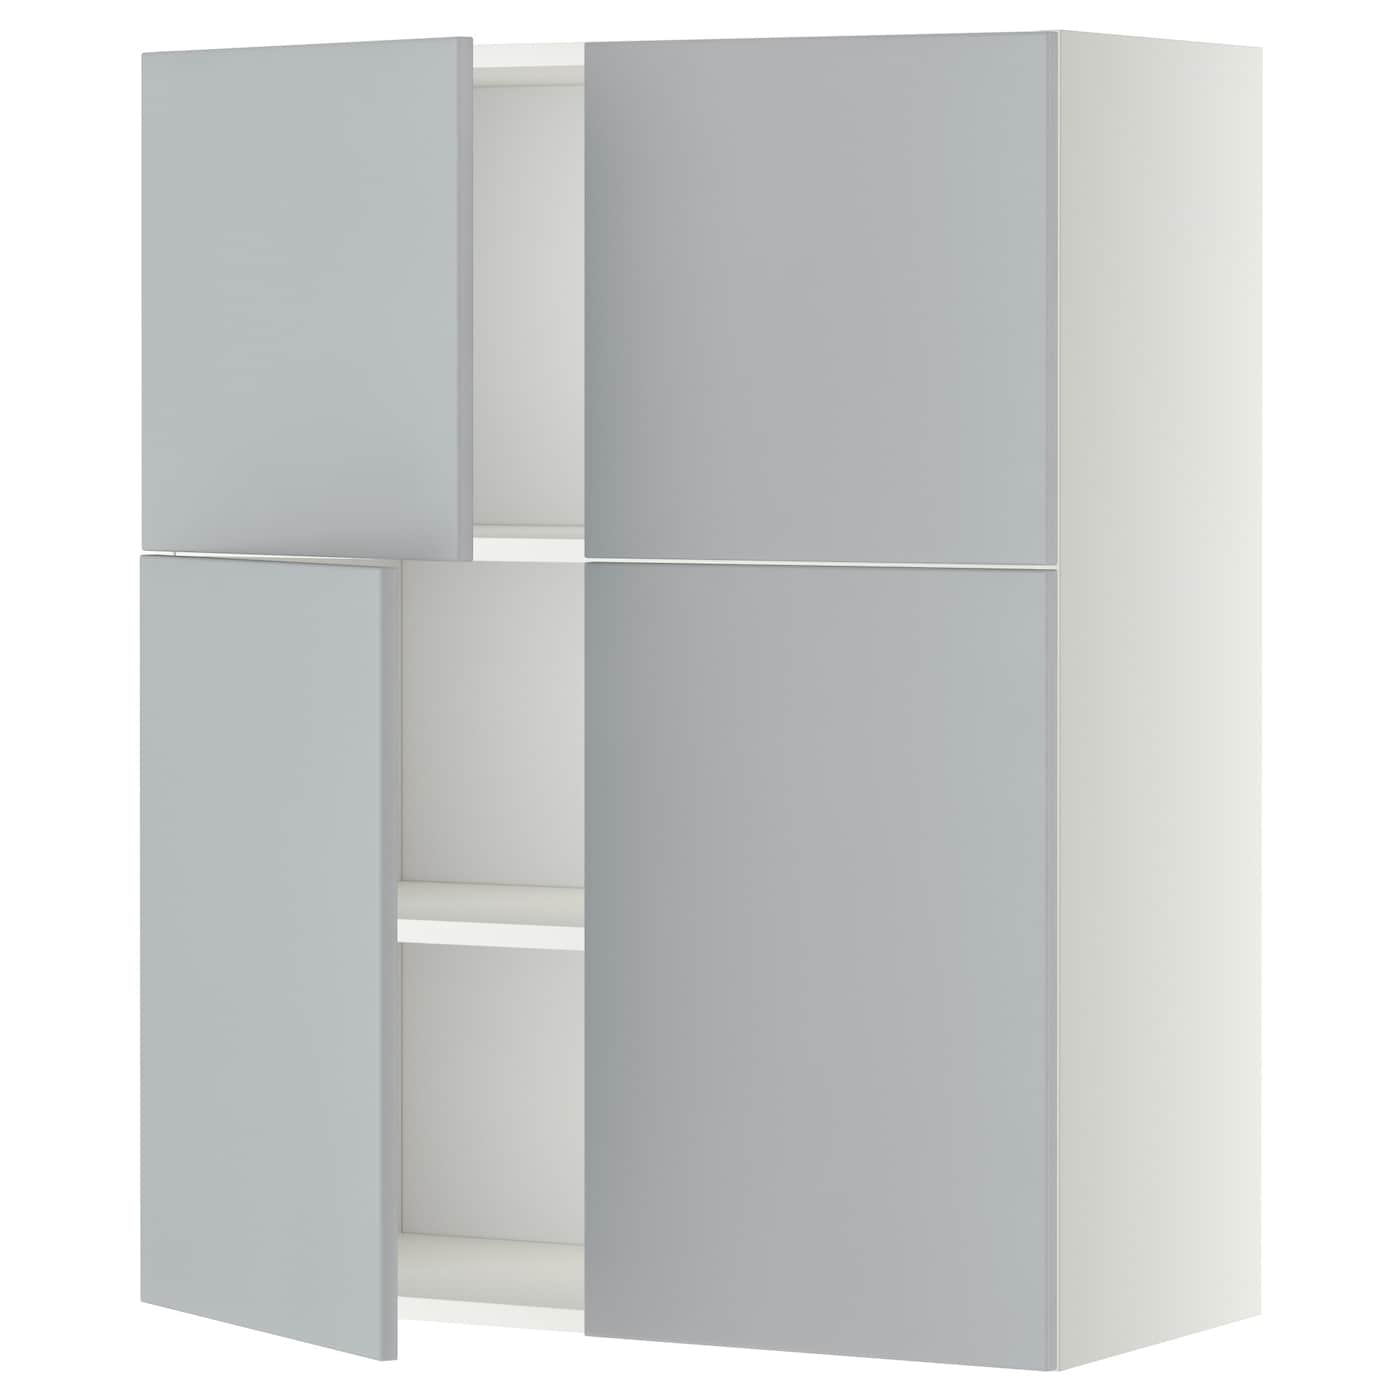 metod wall cabinet with shelves 4 doors white veddinge grey 80x100 cm ikea. Black Bedroom Furniture Sets. Home Design Ideas